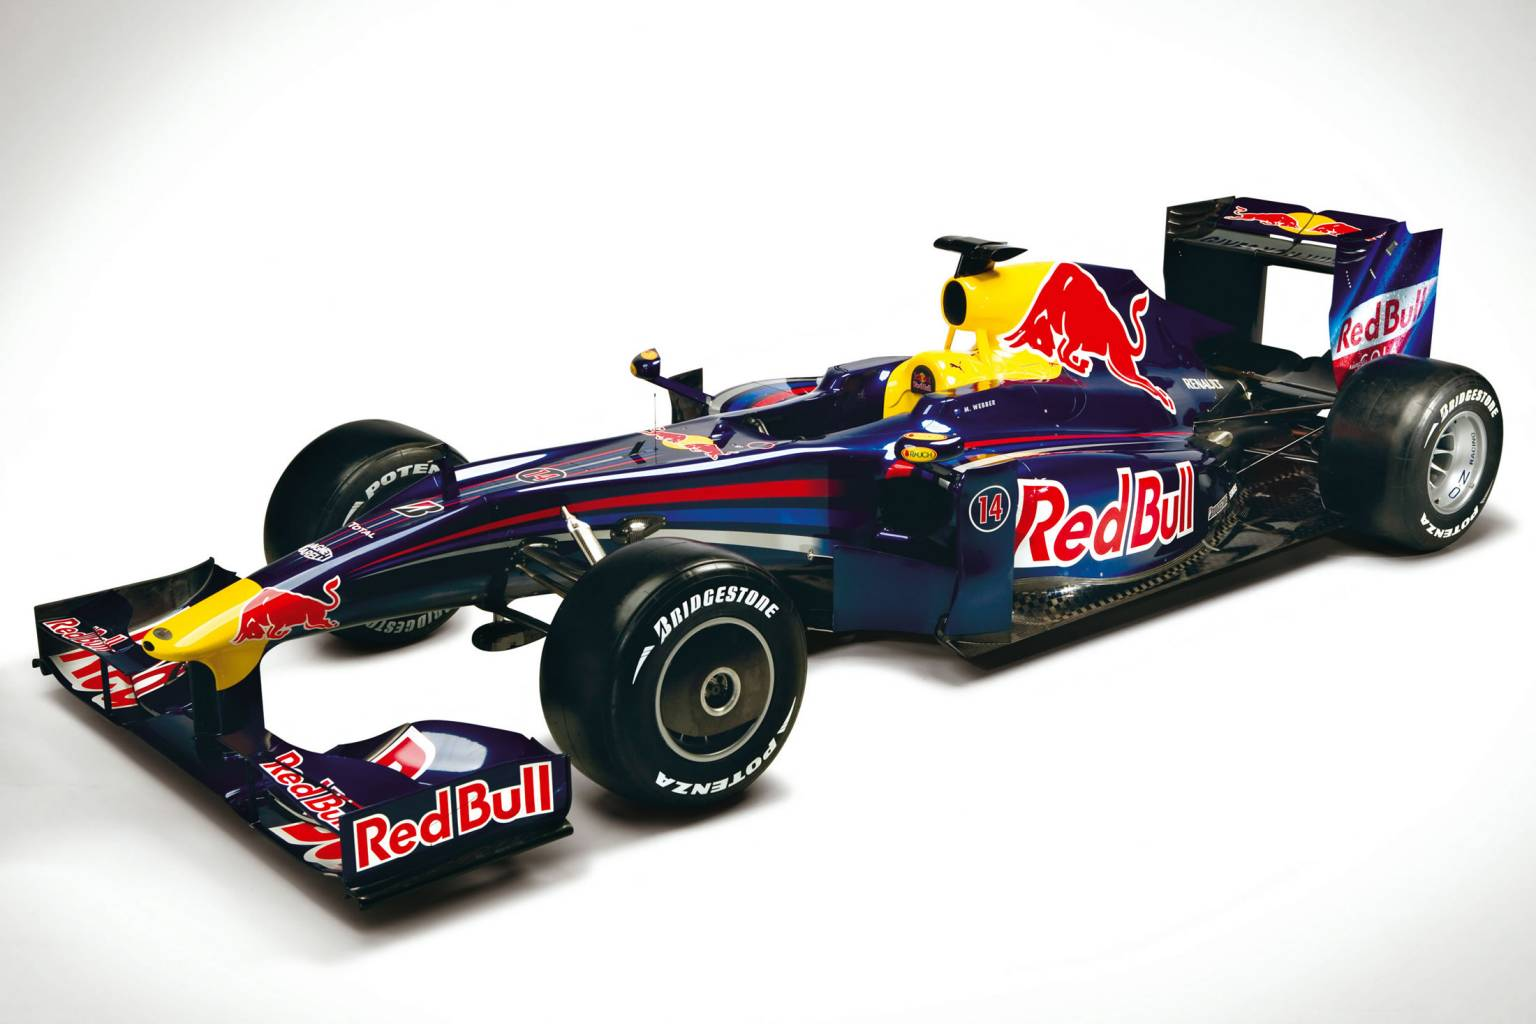 Red bull rb5 photo - 7